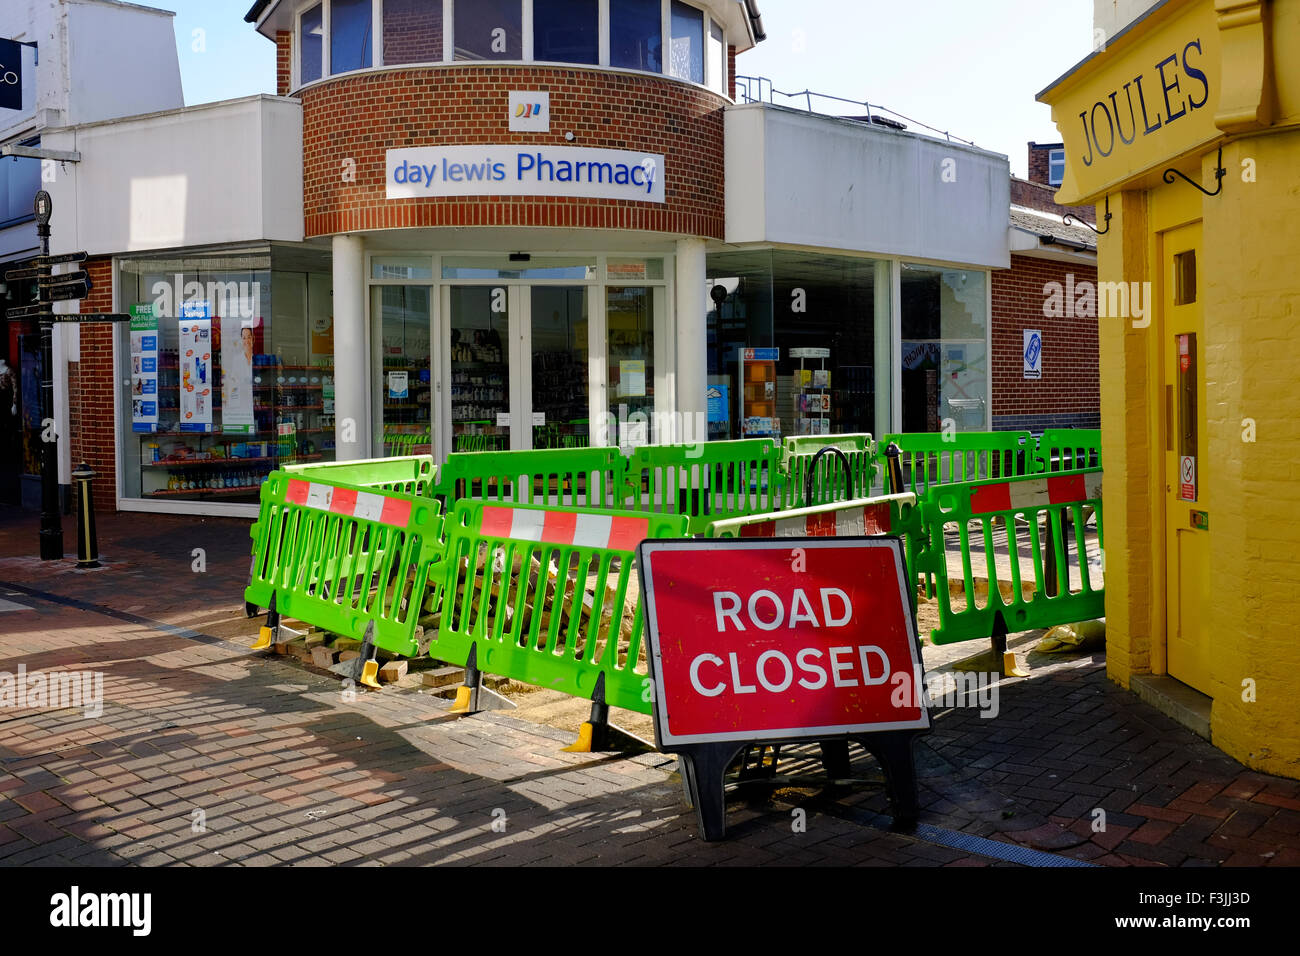 road closed sign shops high street Cowes Isle of Wight UK - Stock Image